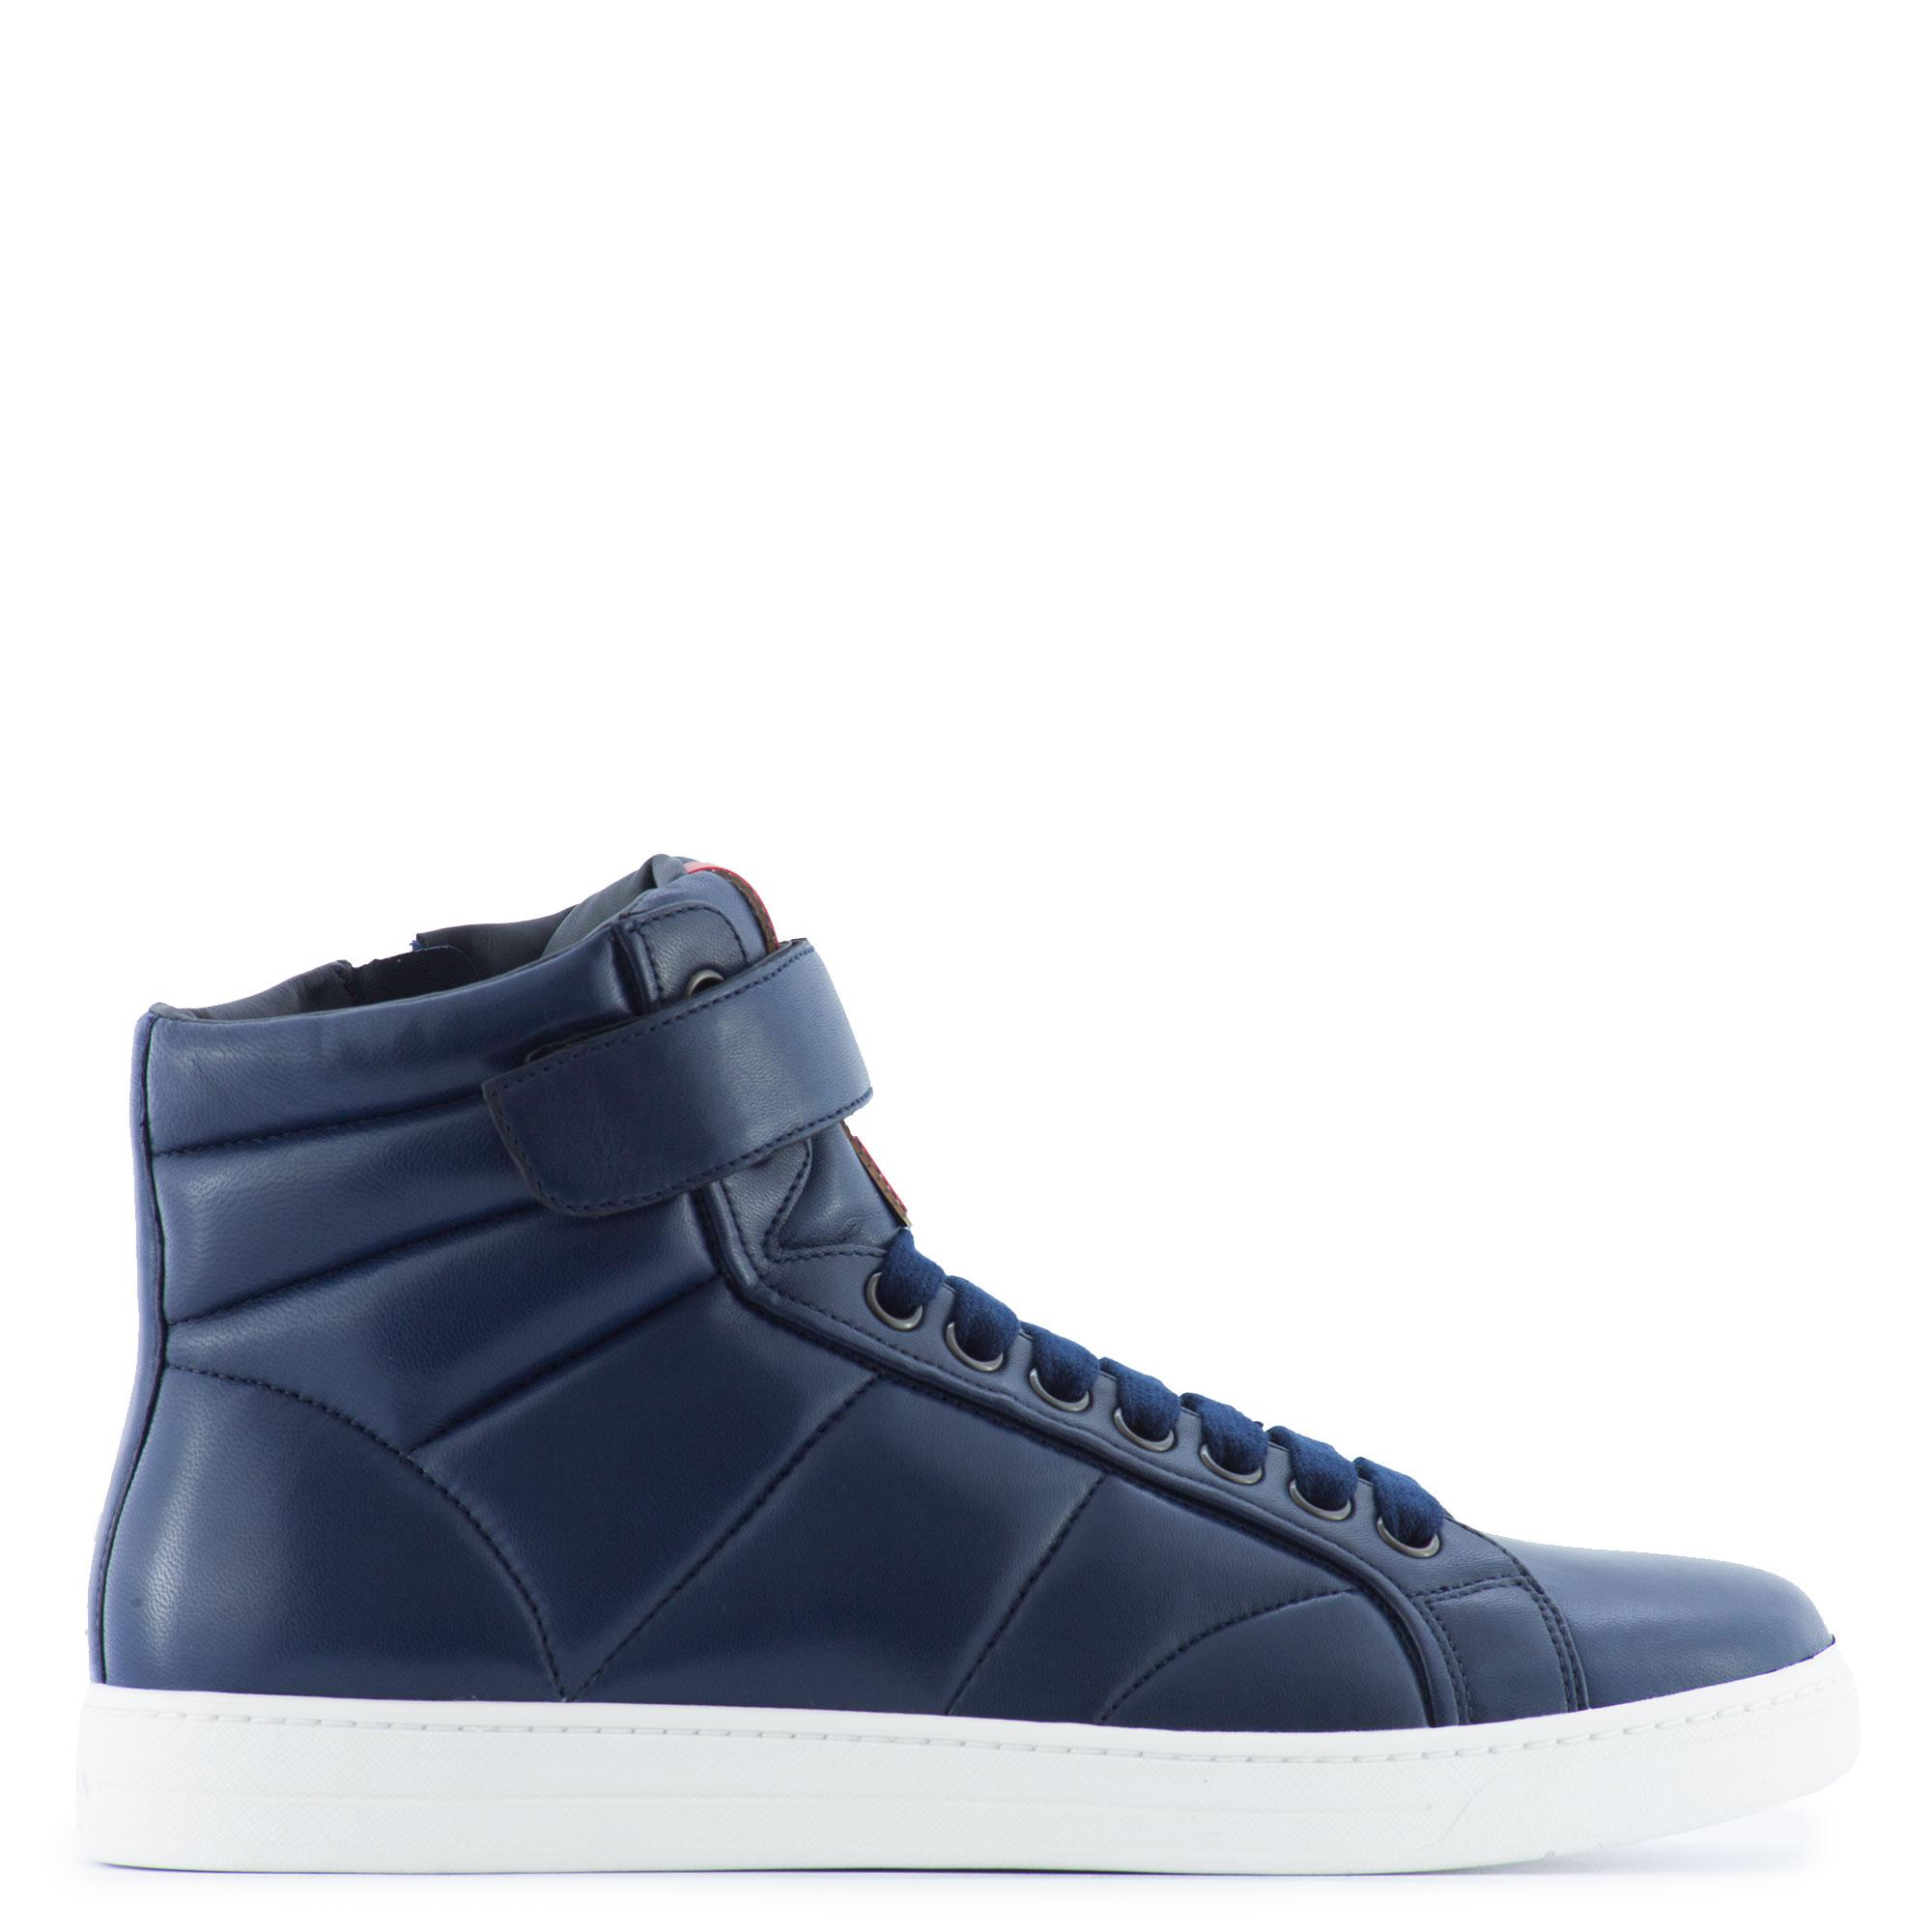 Prada Shoes Men Hi Top